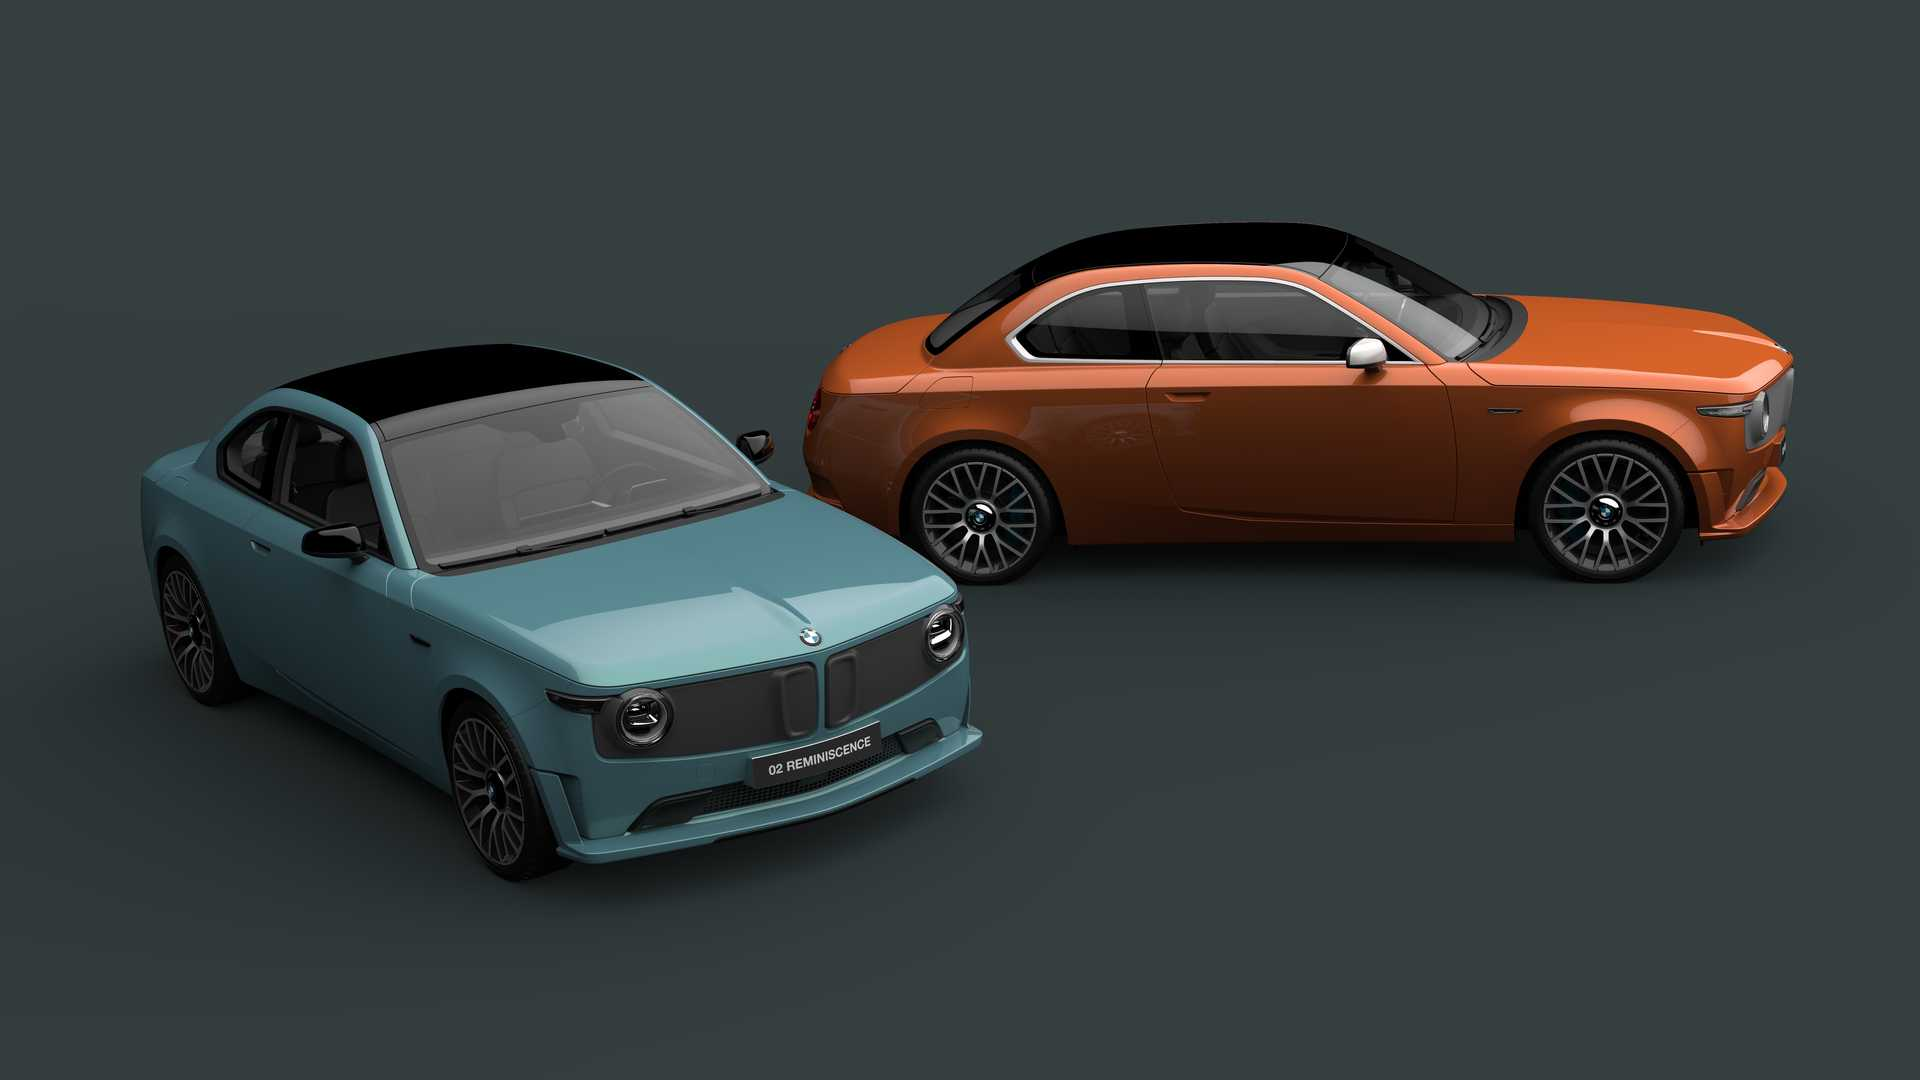 BMW 02 Reminiscence Concept Is A Lovely Tribute To Brand's First EV